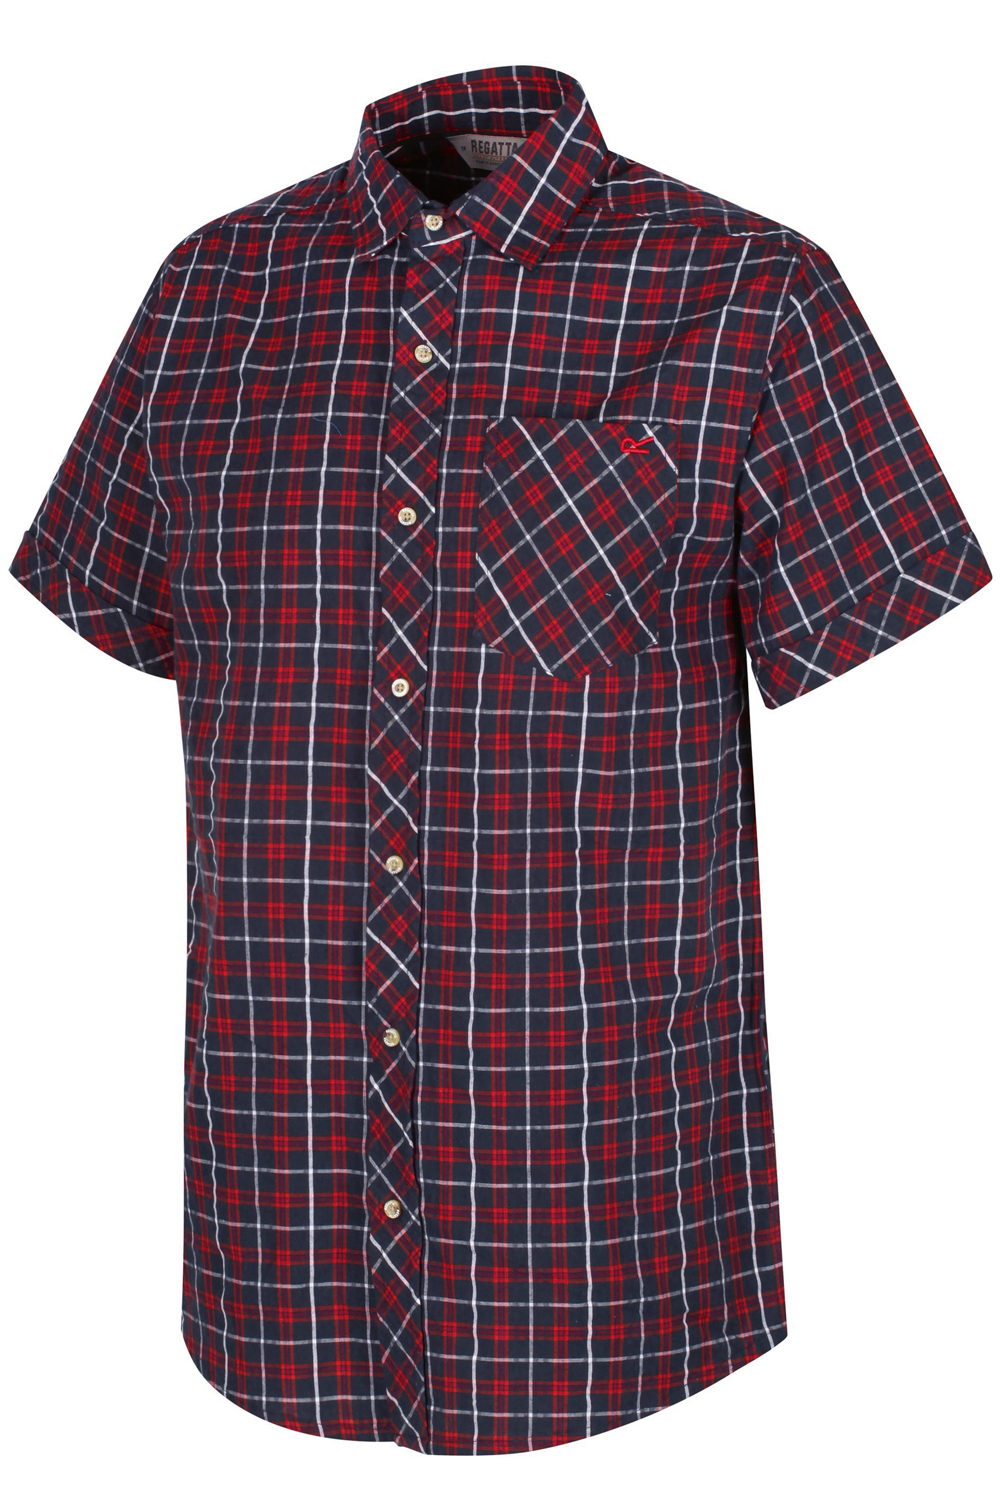 Regatta-Mens-Deakin-II-Coolweave-Cotton-Short-Sleeved-Summer-Check-Shirt-RRP-50 thumbnail 5